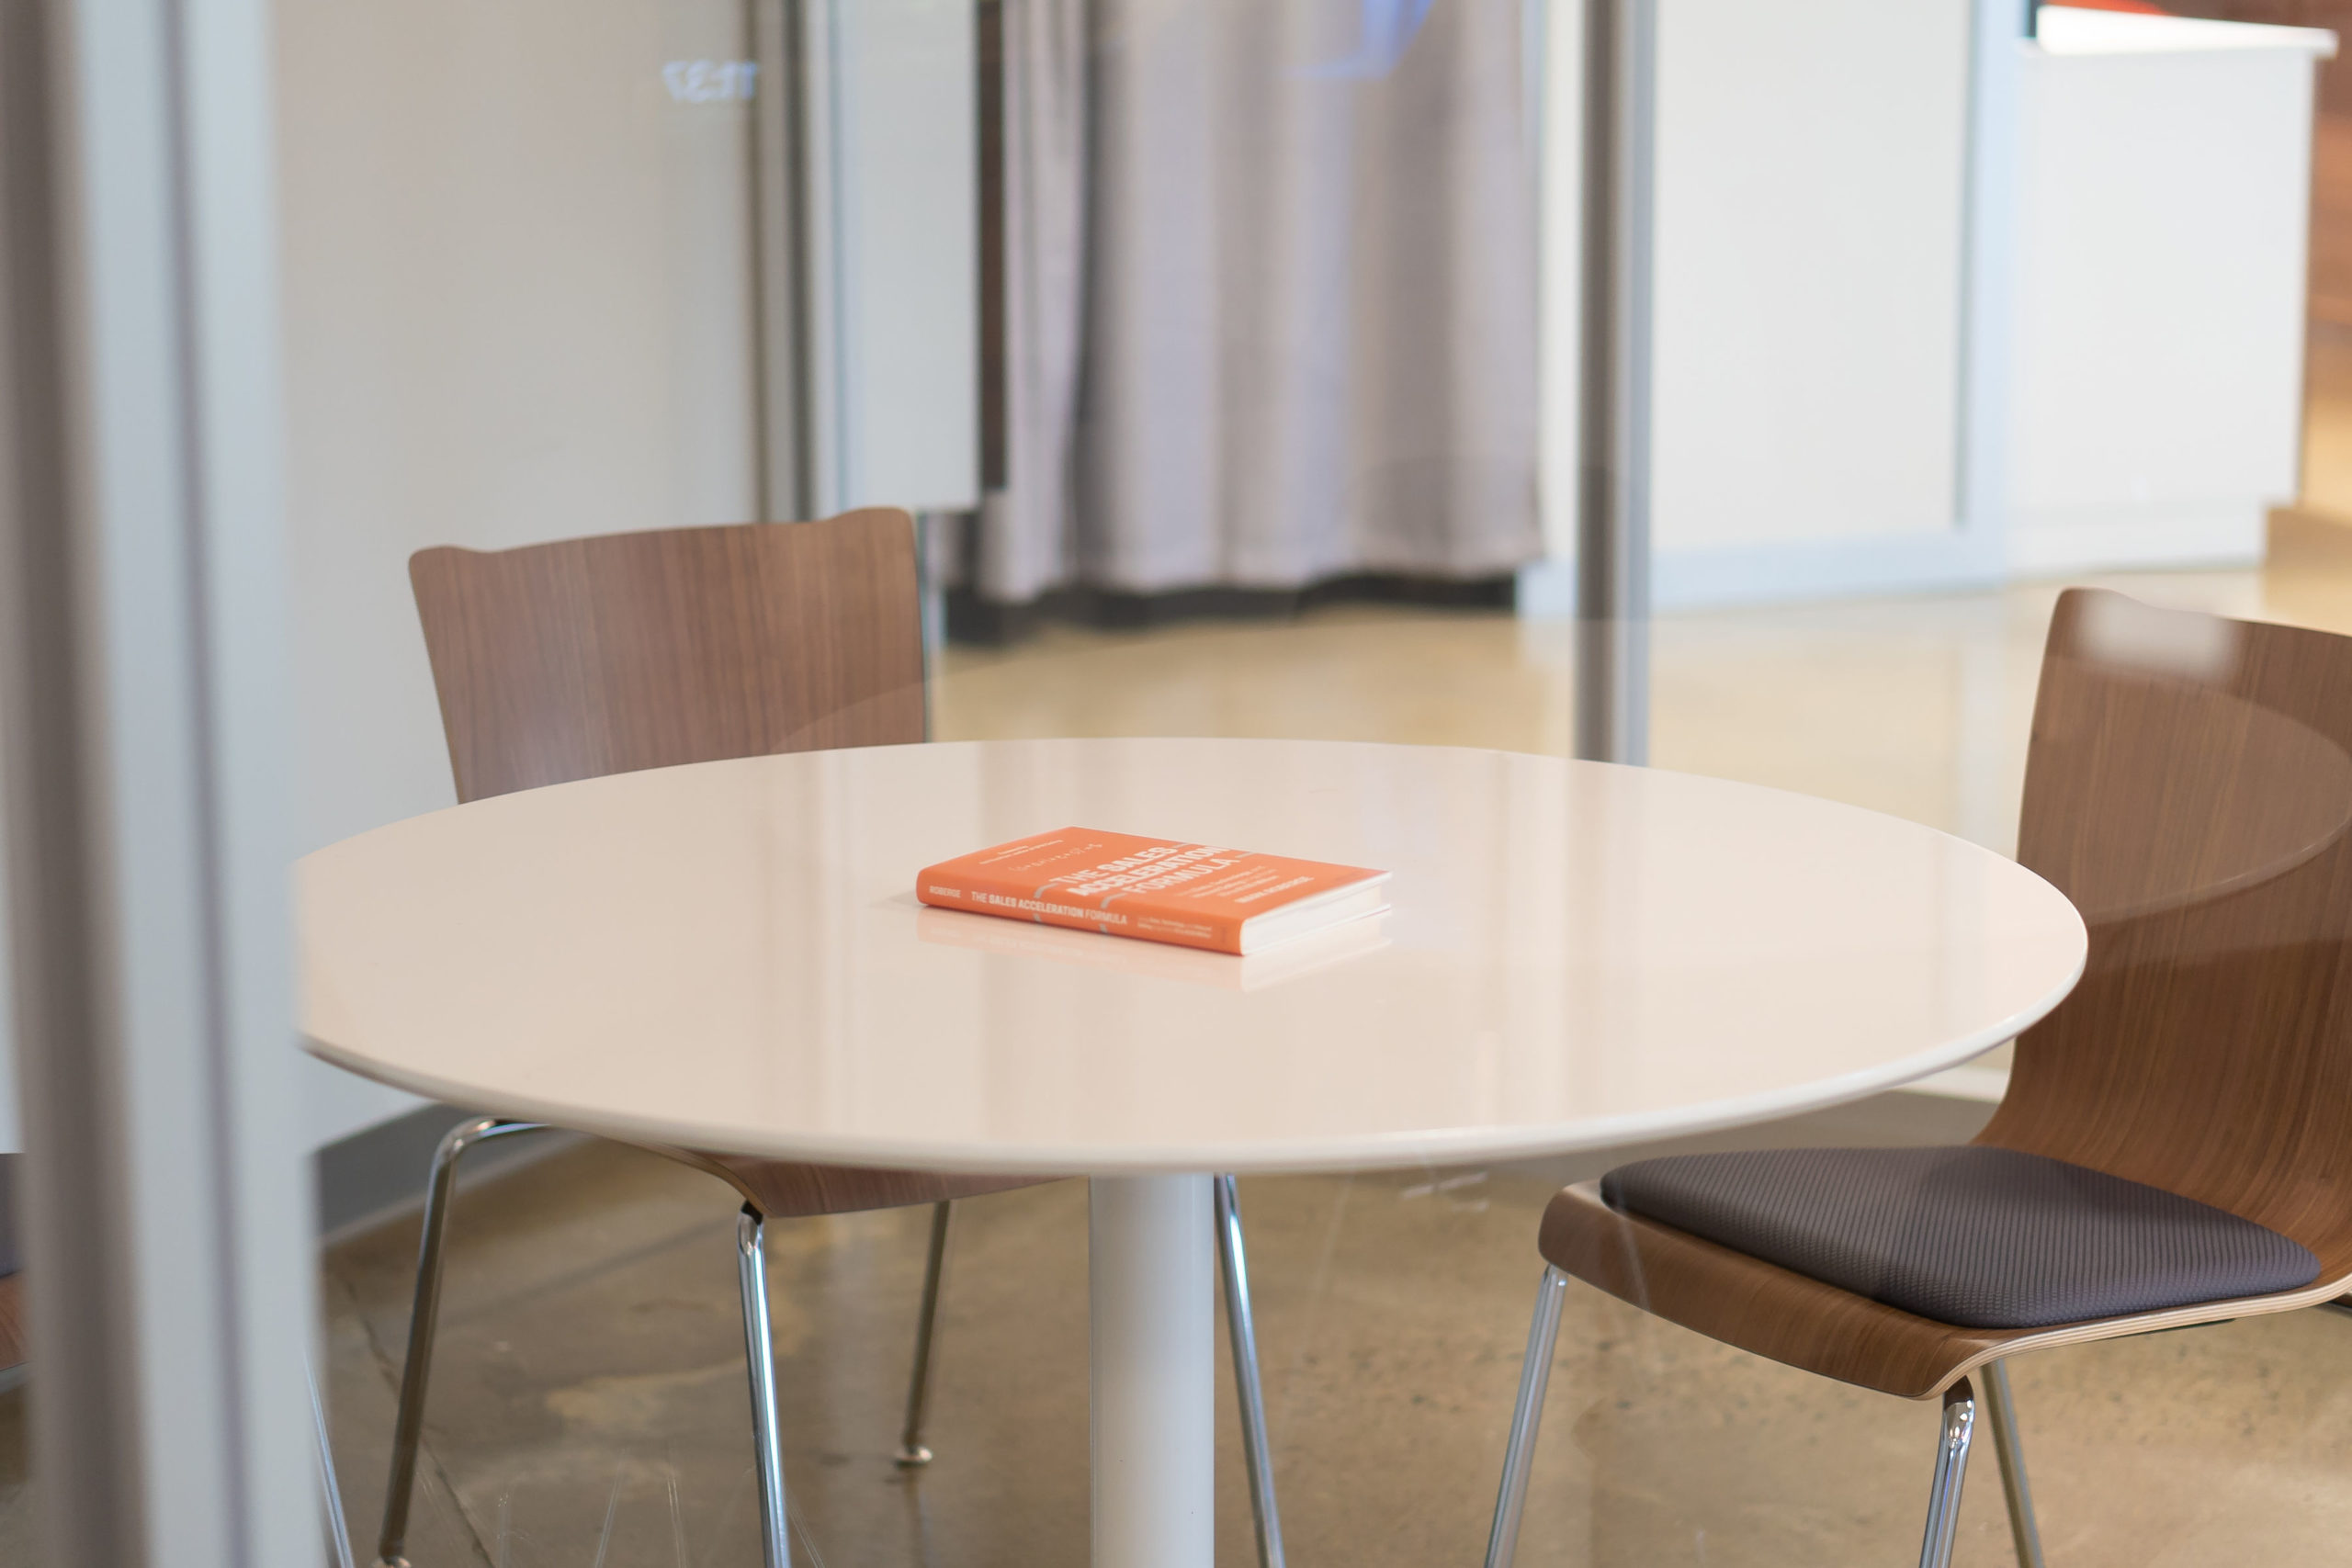 leadership book on a table